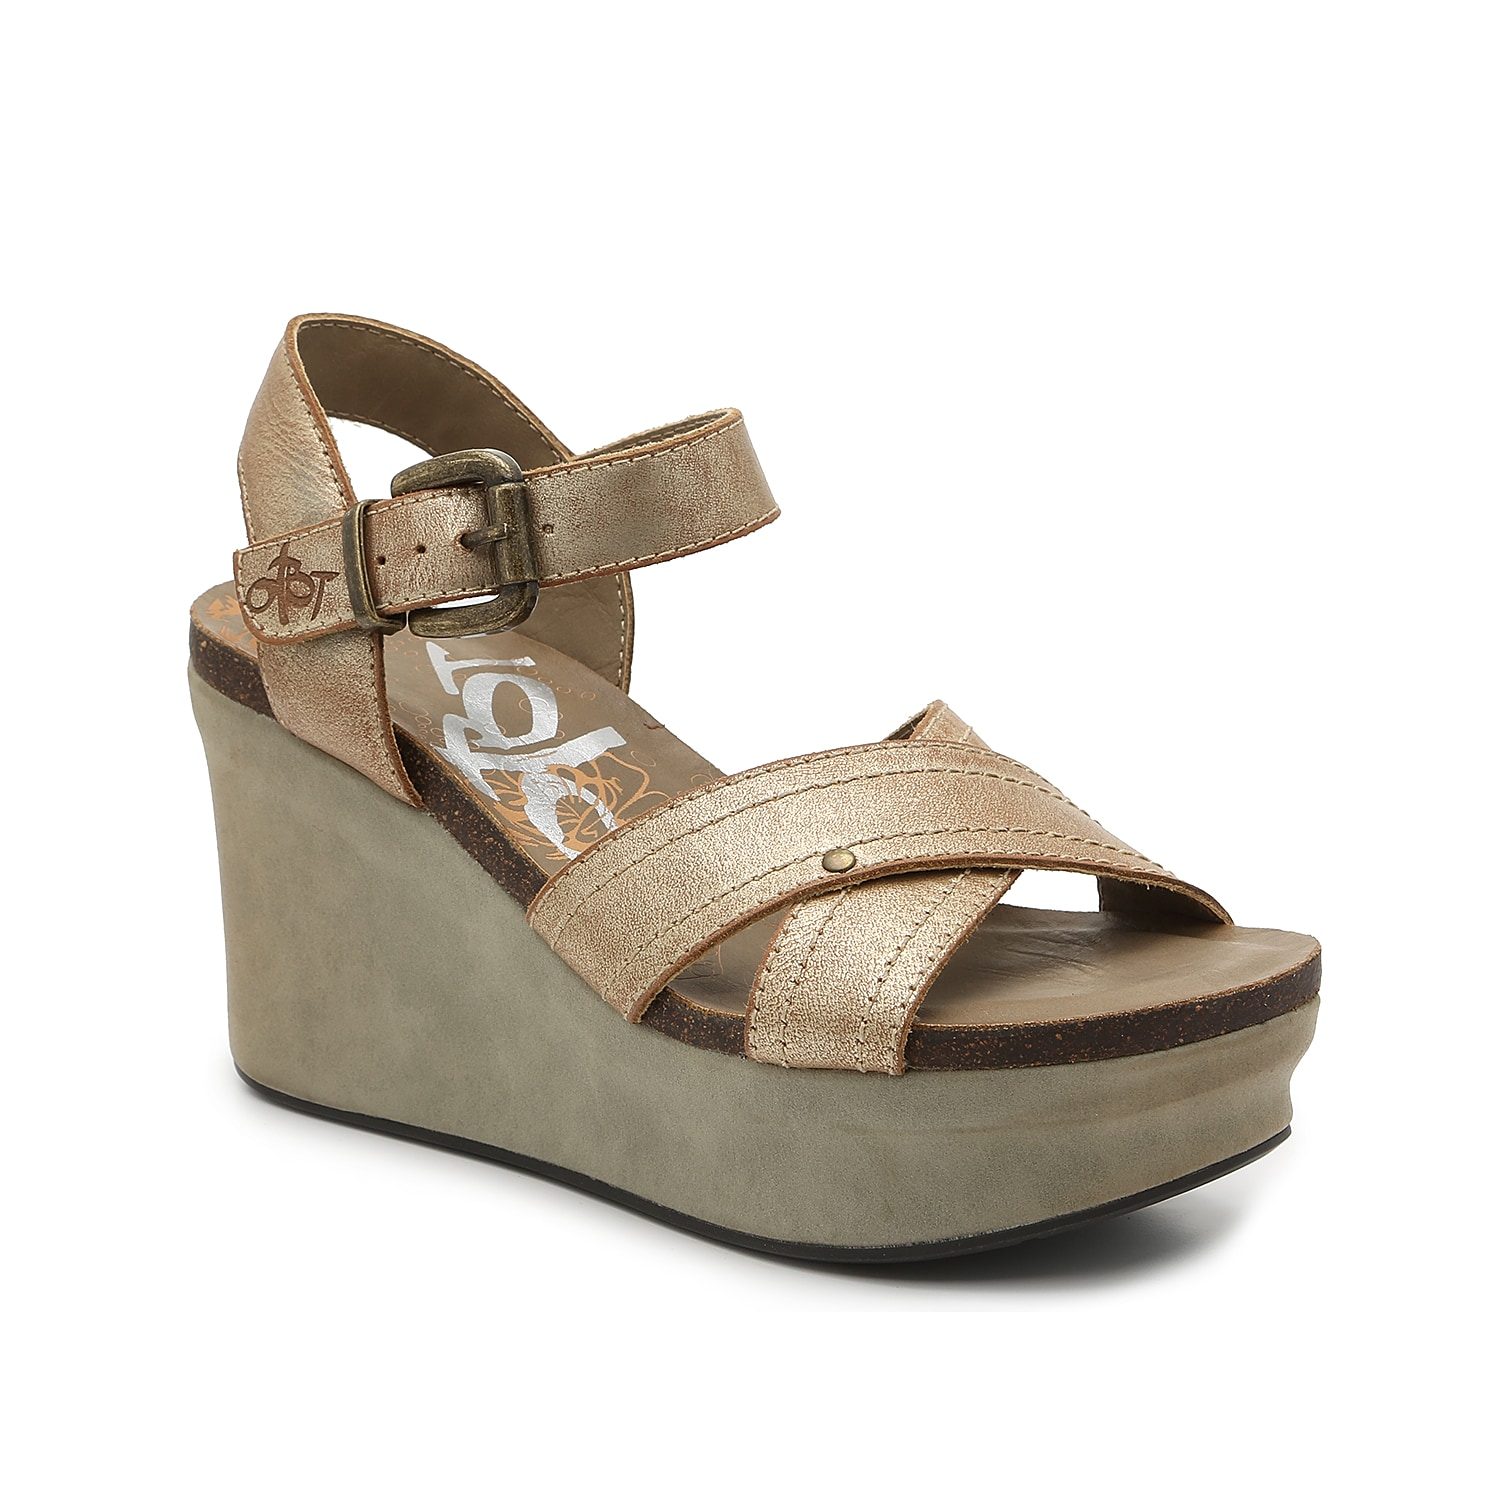 Lift your look in a modern way with the Bee Cave wedge sandal from Otbt. With crisscross straps and a cork midsole, this leather pair will complement all your jeans, skirts, or dresses.